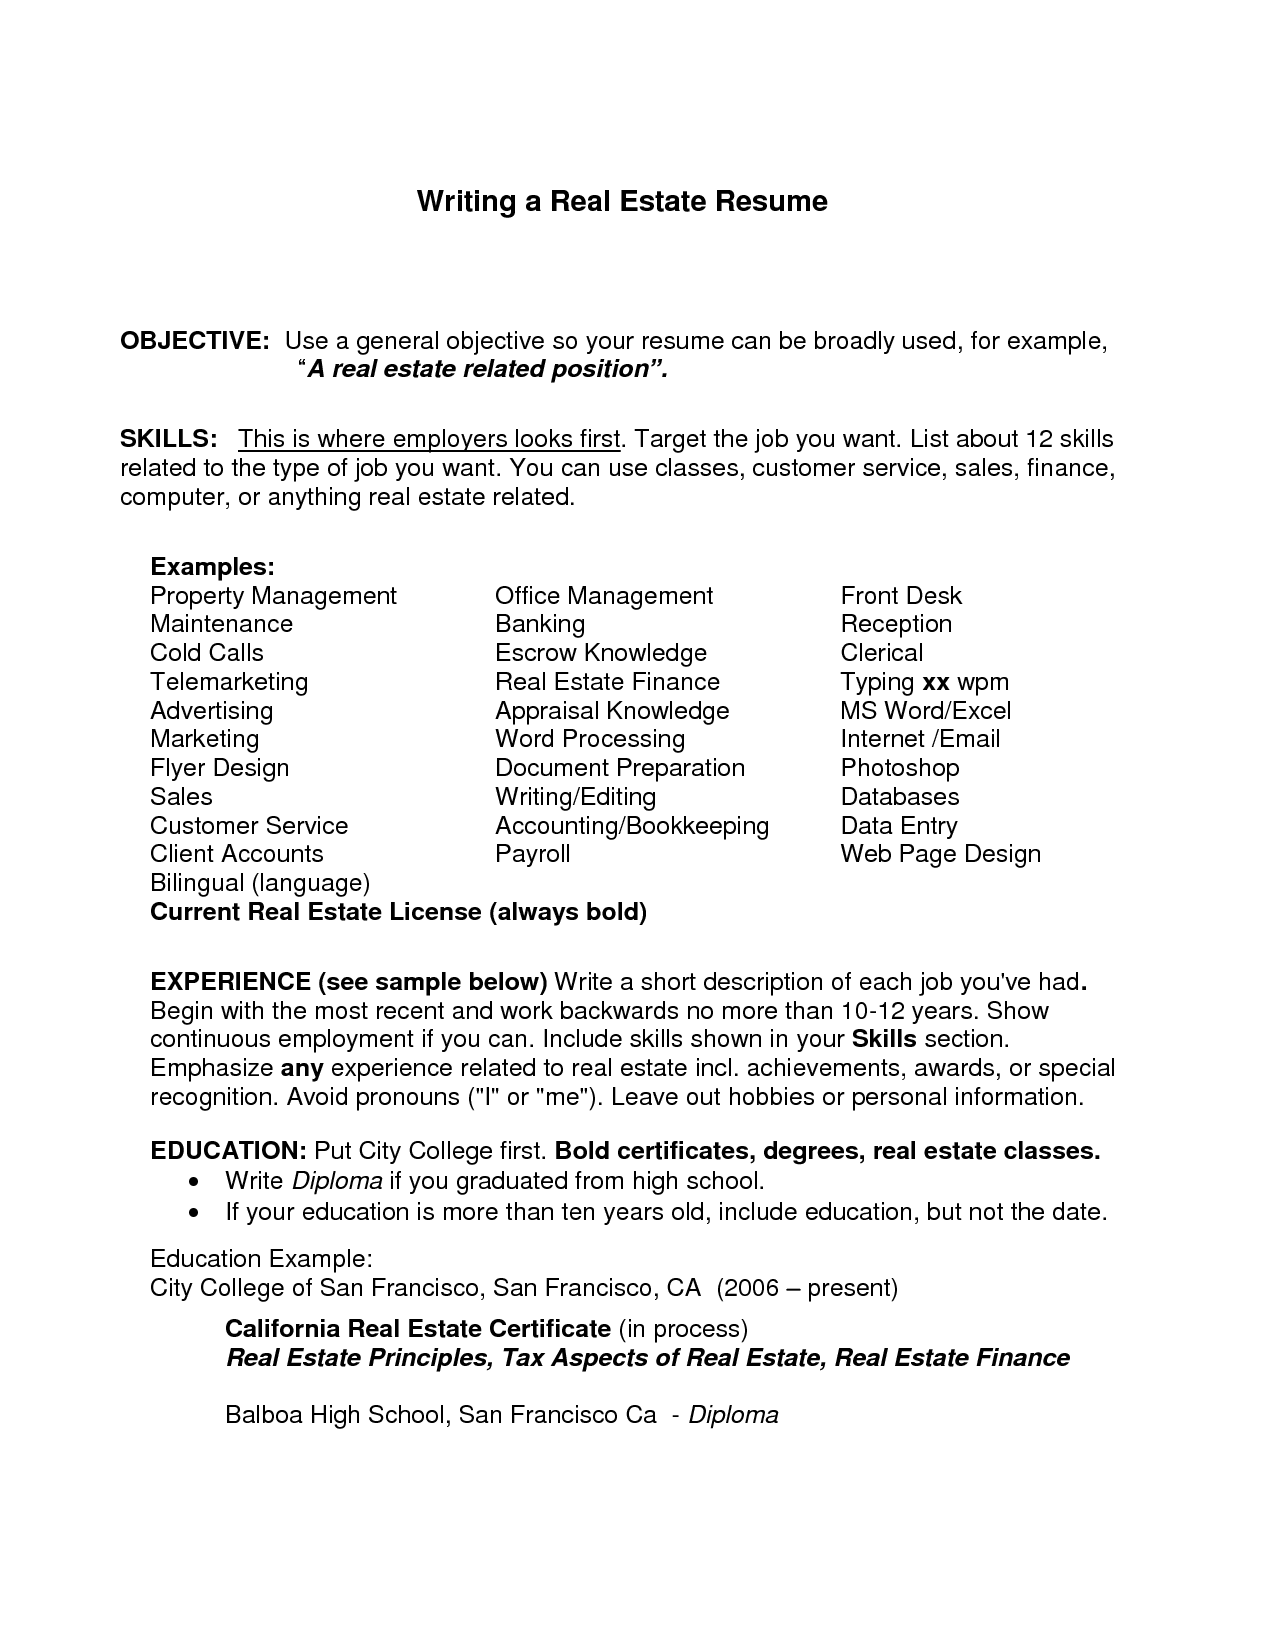 General Resume Objective Examples. Job Resume Objective Examples  Resume Writing Classes